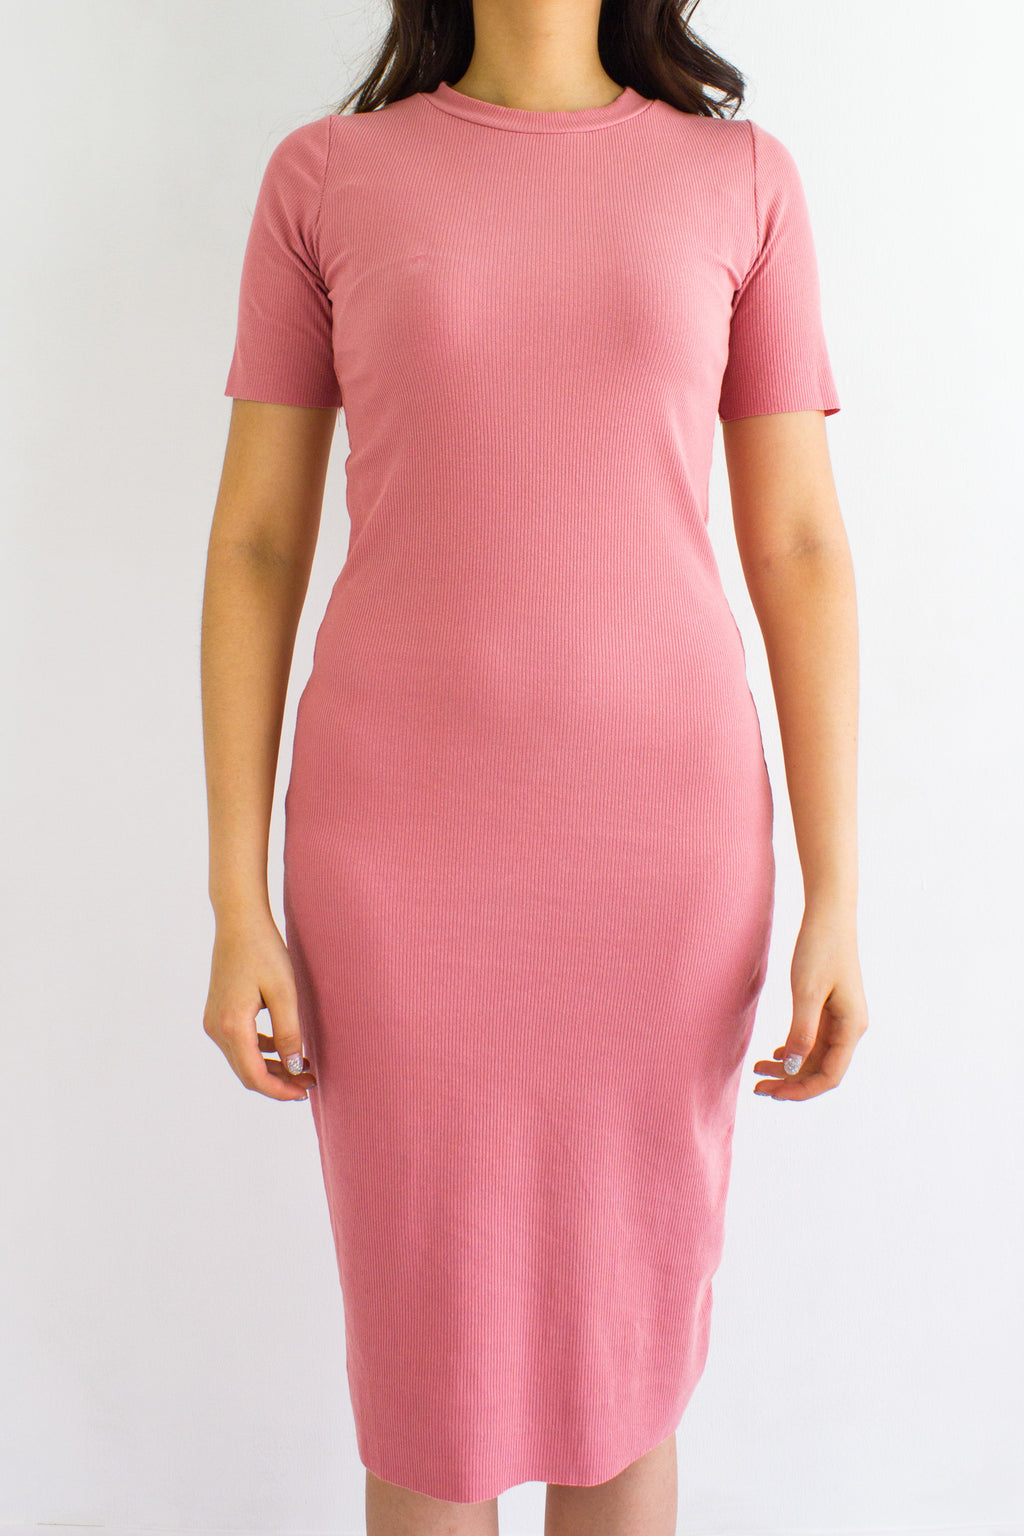 Classic Fitted Ribbed Midi Dress in Pink - DRESSES - Peep Boutique